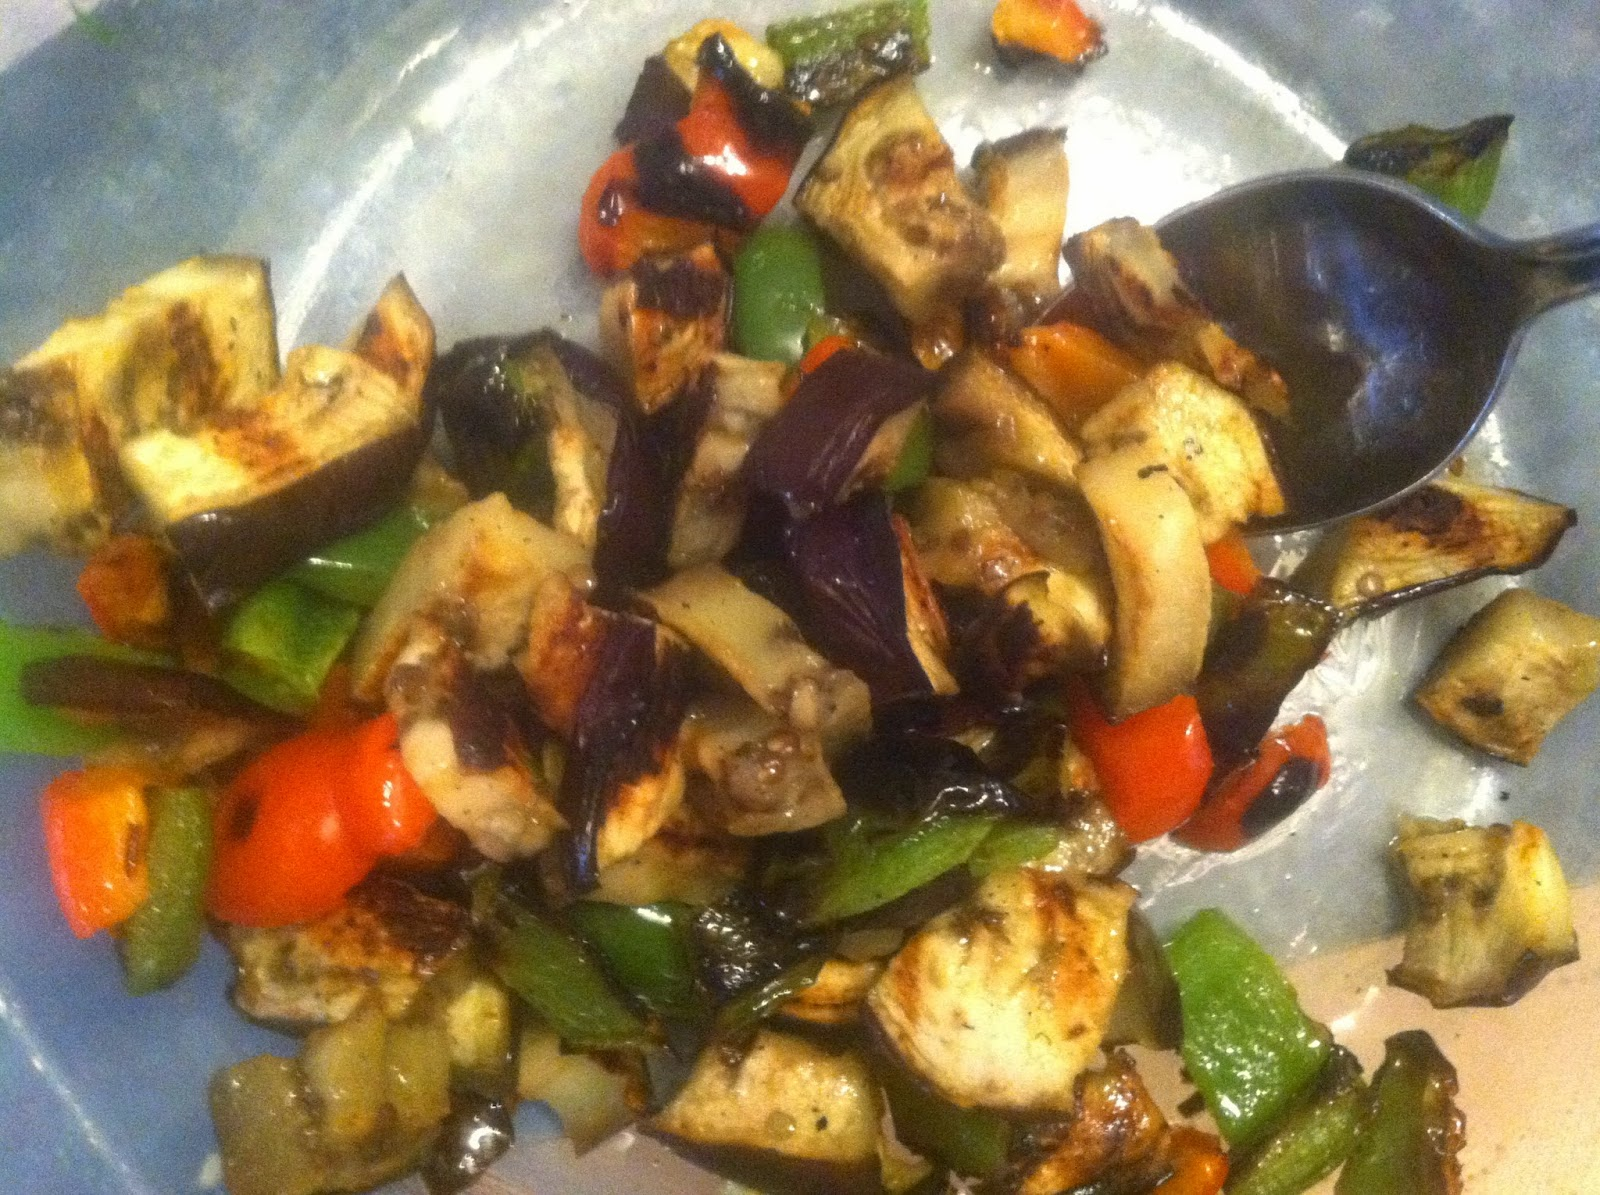 grilled peppers and eggplant to serve with tuna steak.